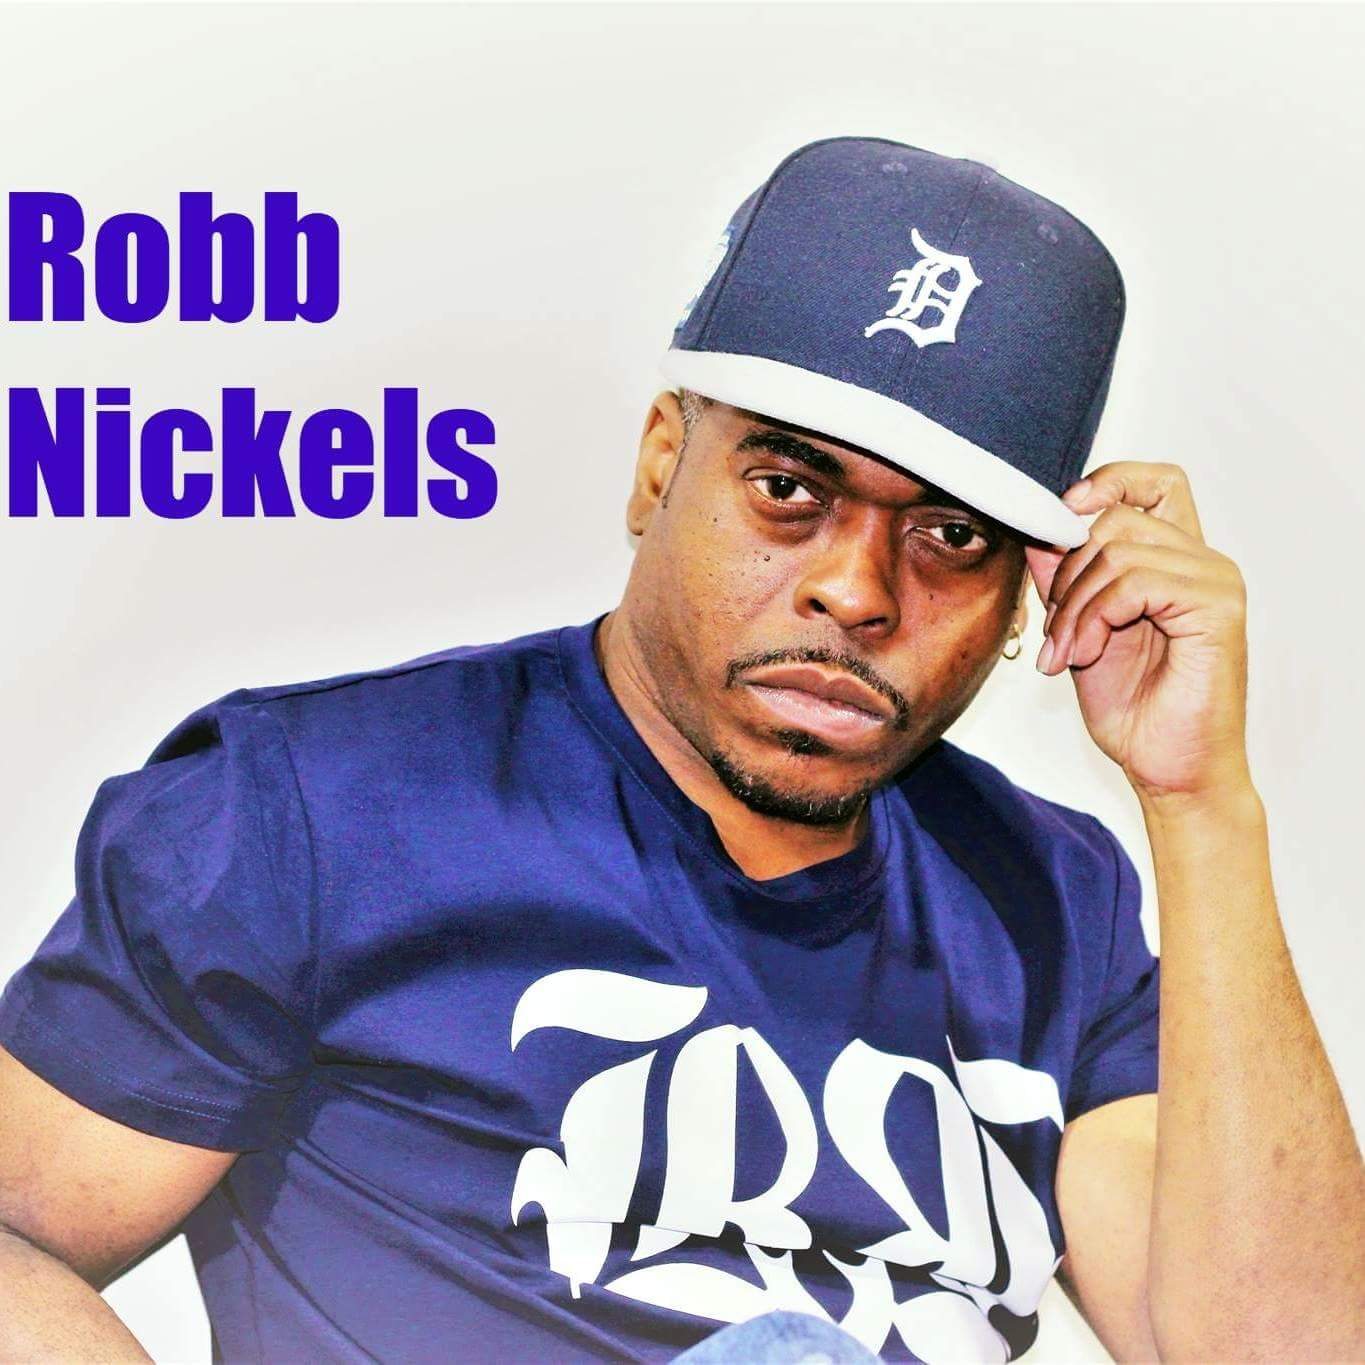 Robb Nickels